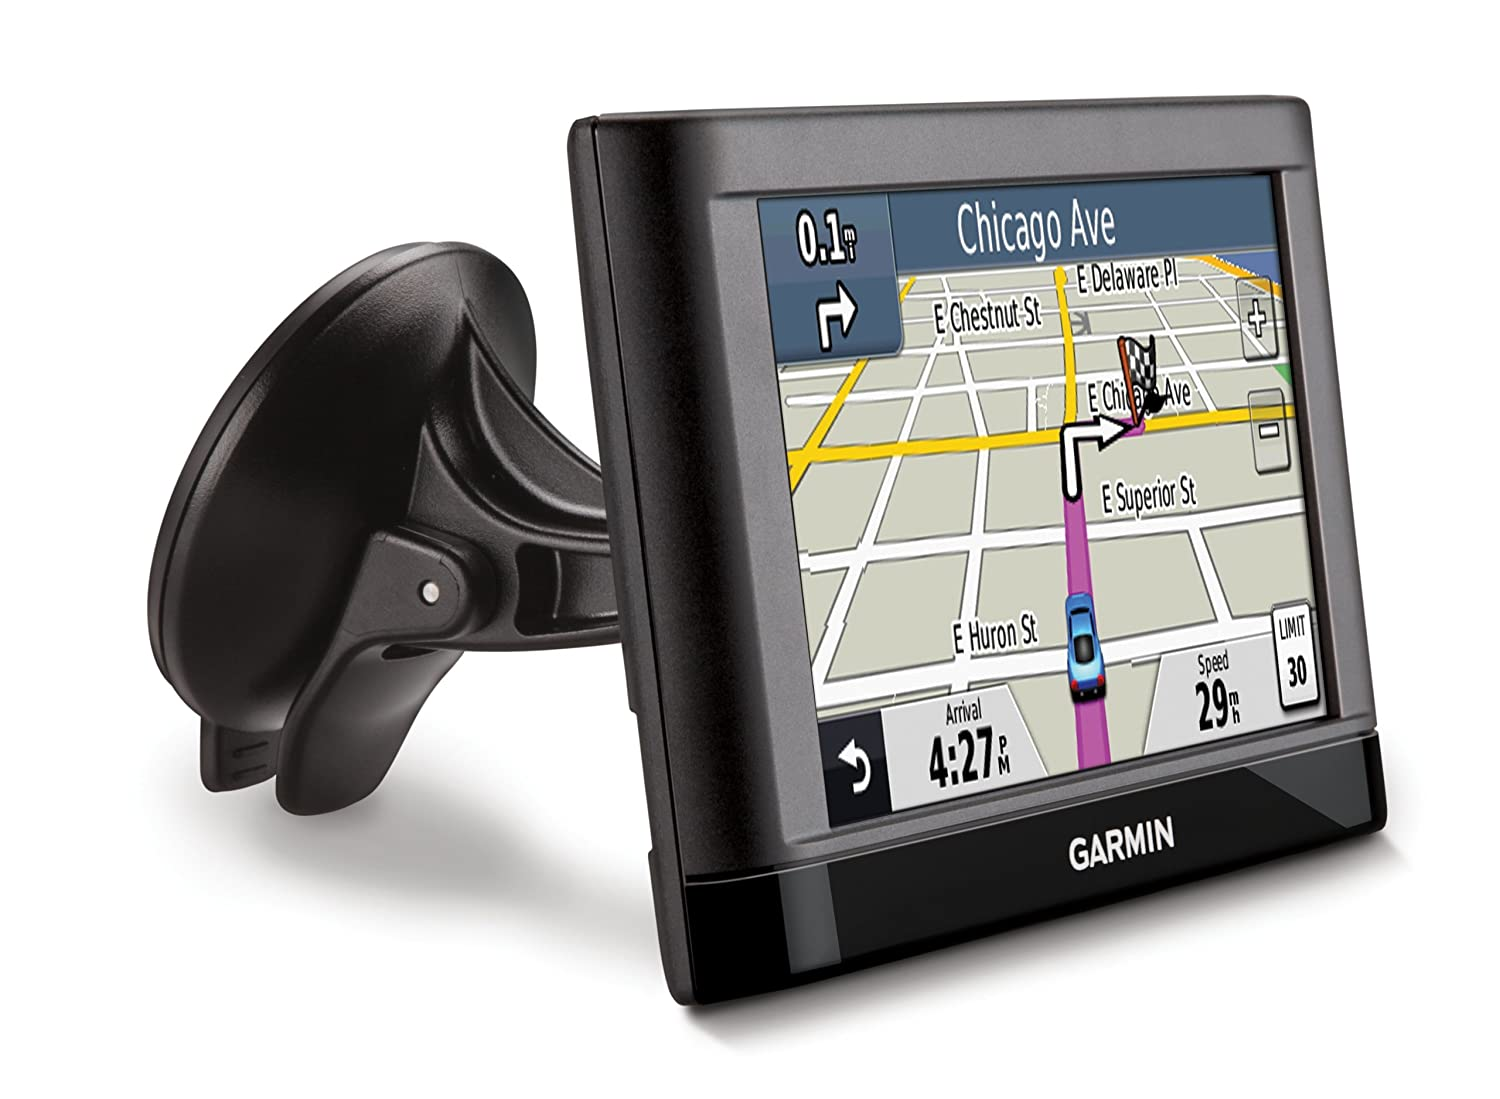 amazon com garmin nuevi 42lm 4 3 inch portable vehicle gps with lifetime maps us discontinued by manufacturer cell phones accessories